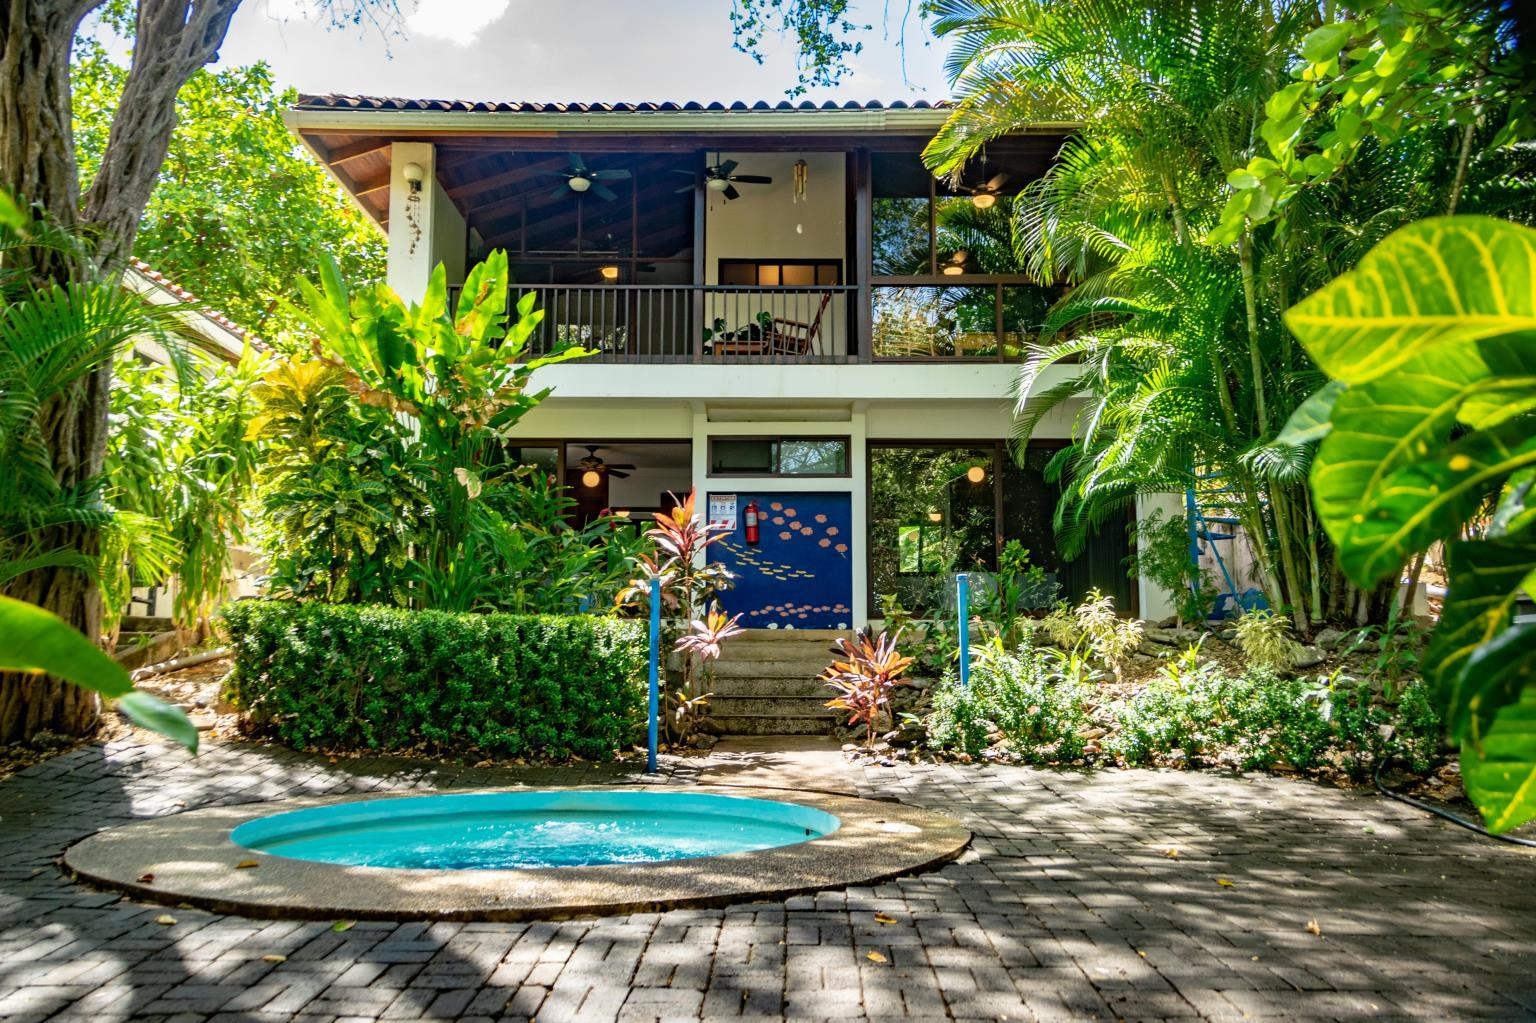 Bed and breakfast in Playa Ocotal Costa Rica